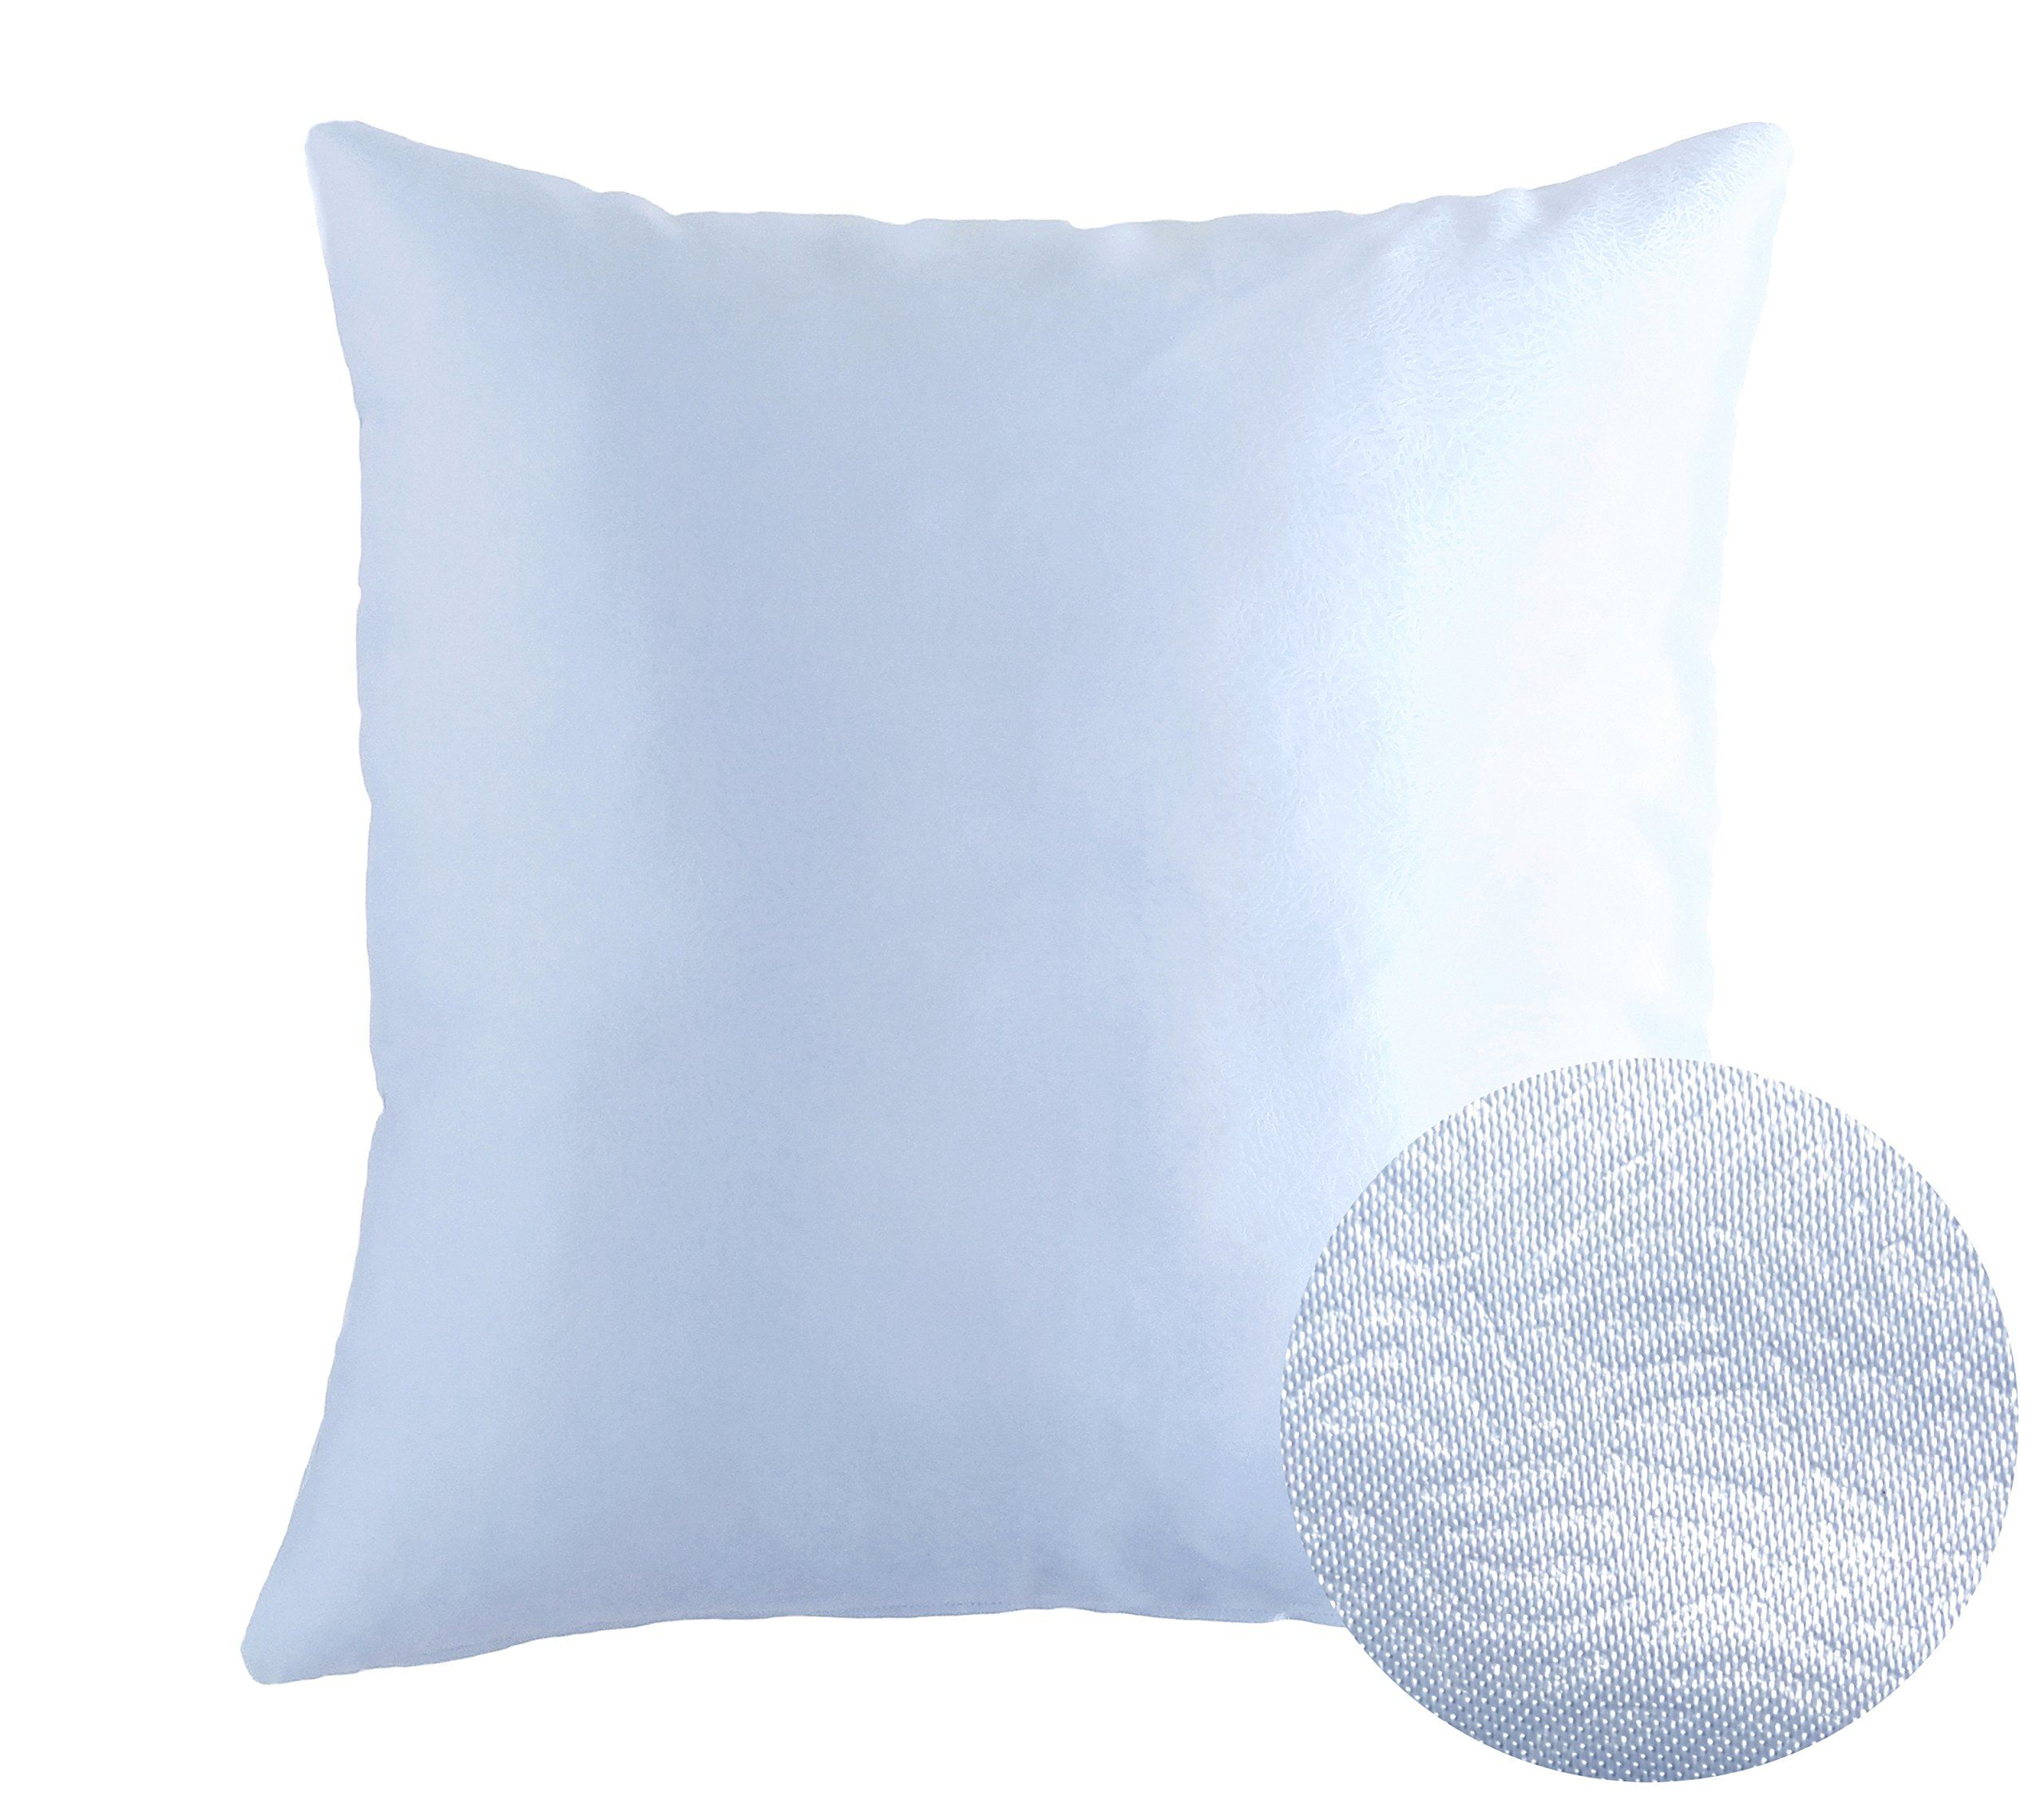 pillow case texture. Cold Light Blue Decorative Satin Throw Pillow Covers Texture Pillowcase  18x18 Inches. ☆The Price Is For 1 Pillow Covers ☆Pillow Cover ONLY - Insert Case Texture